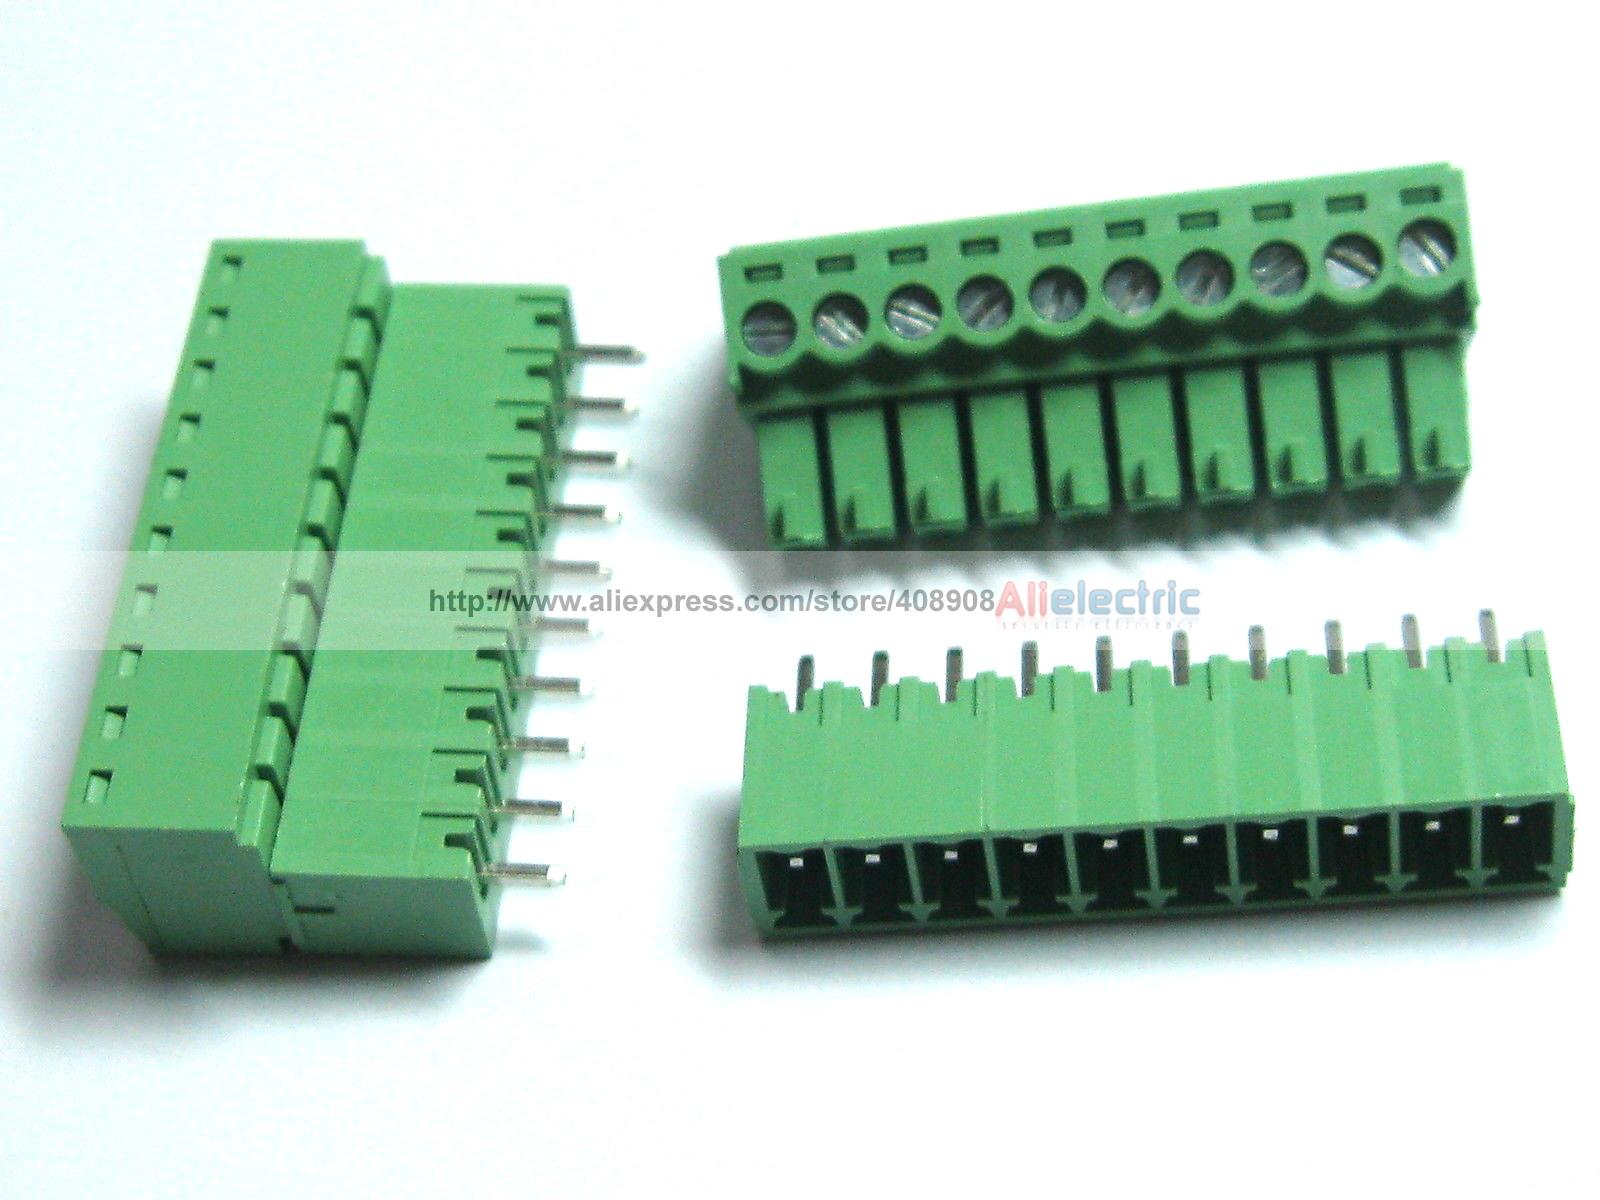 20 Pcs/lot  Screw Terminal Block Connector 3.81mm 10 Pin Way Green Pluggable Type